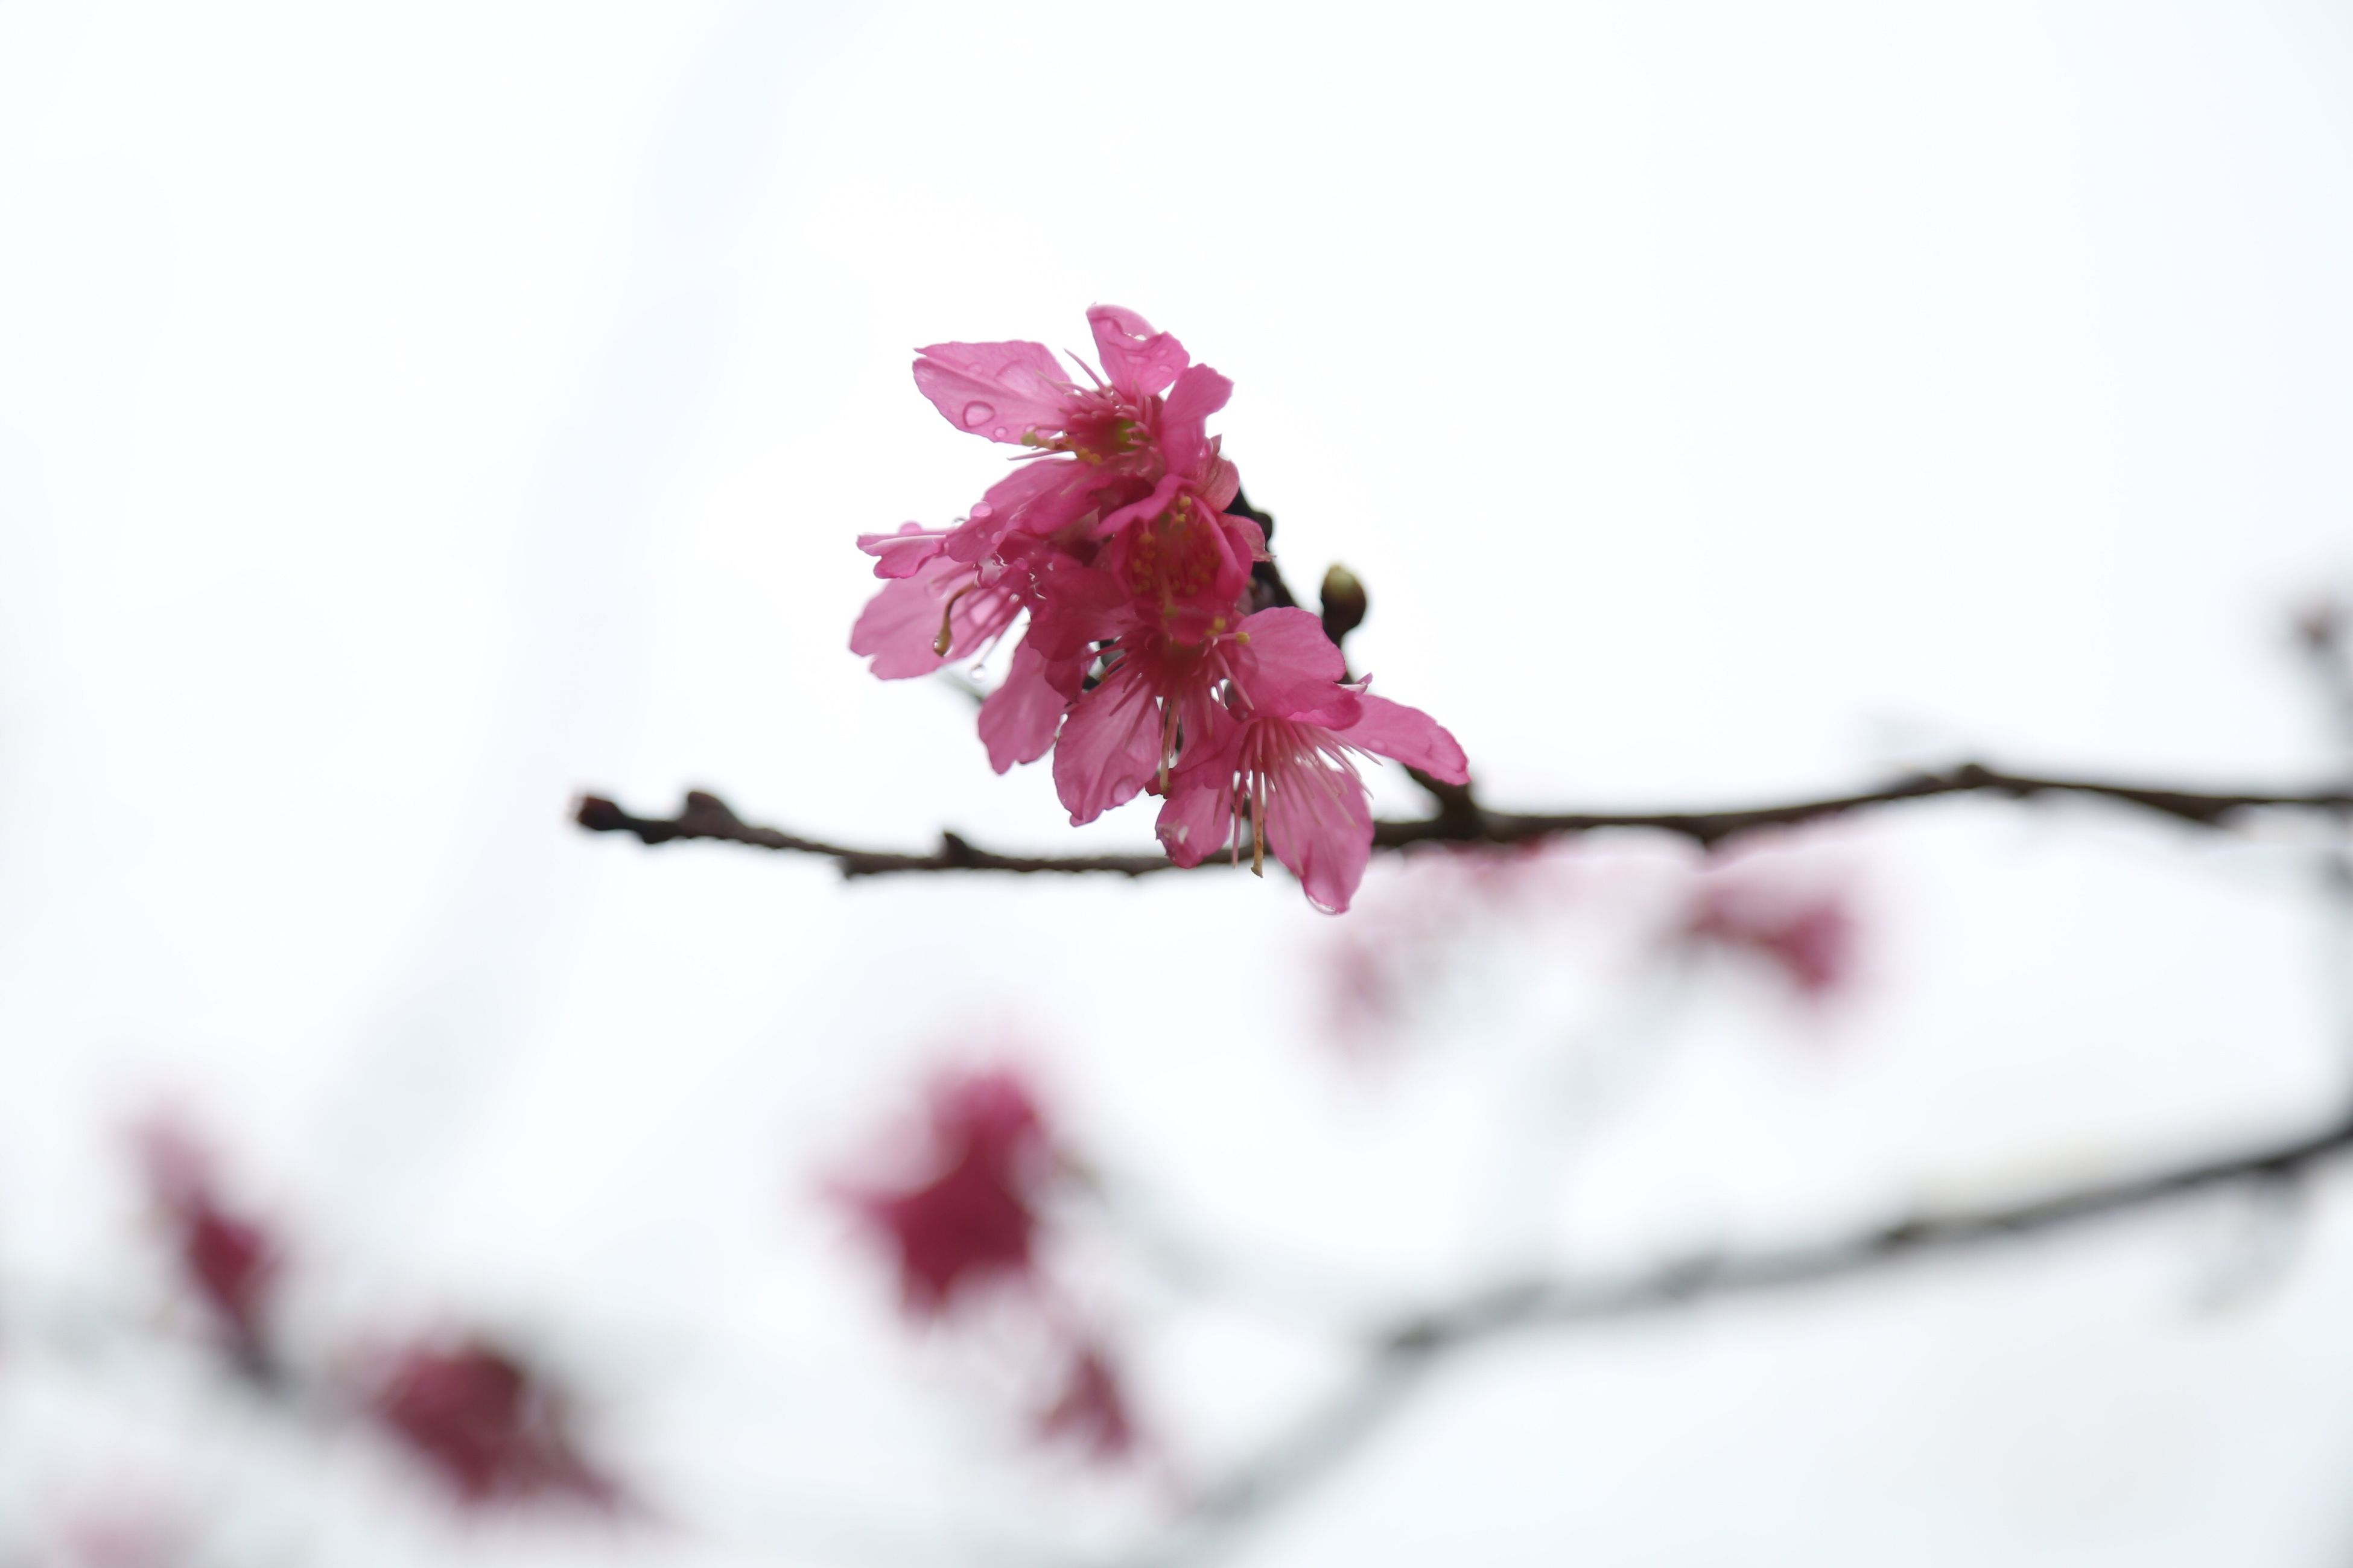 flower, fragility, nature, growth, beauty in nature, freshness, pink color, petal, no people, flower head, close-up, plum blossom, springtime, sky, blossom, day, outdoors, branch, tree, rhododendron